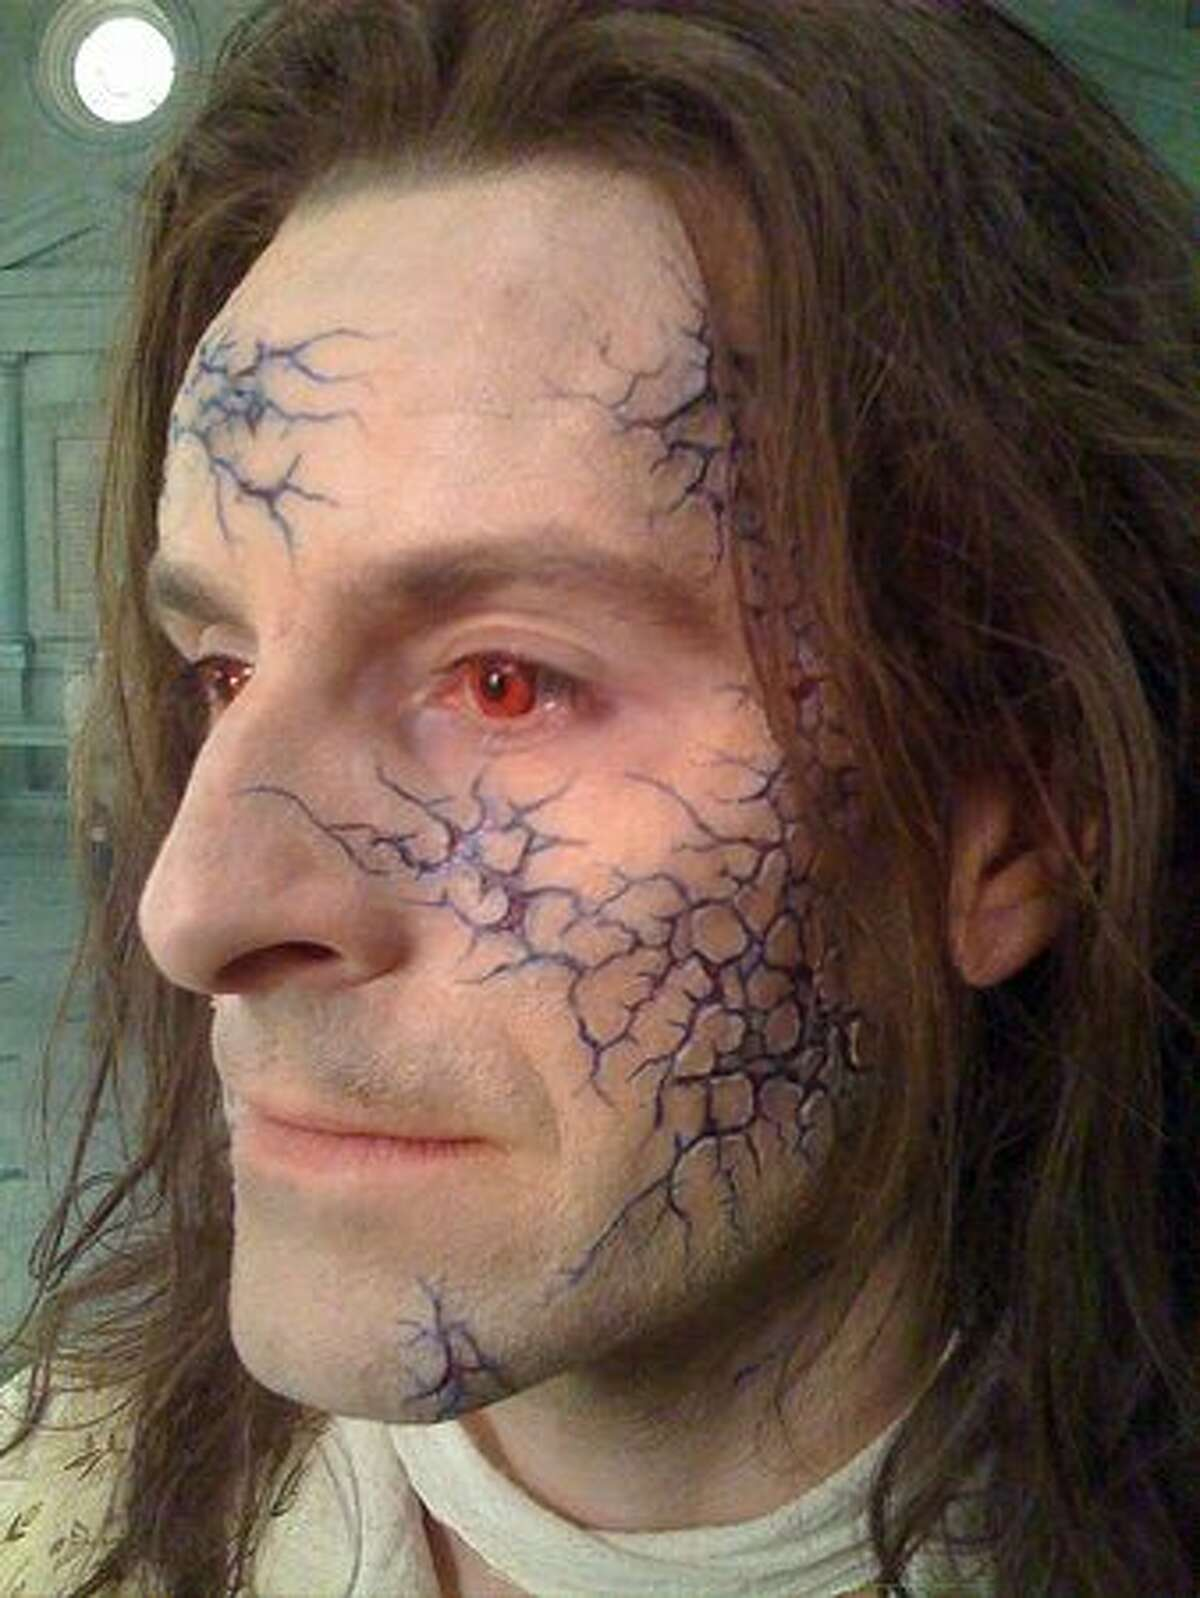 A man wears makeup character effects company Masters FX created for